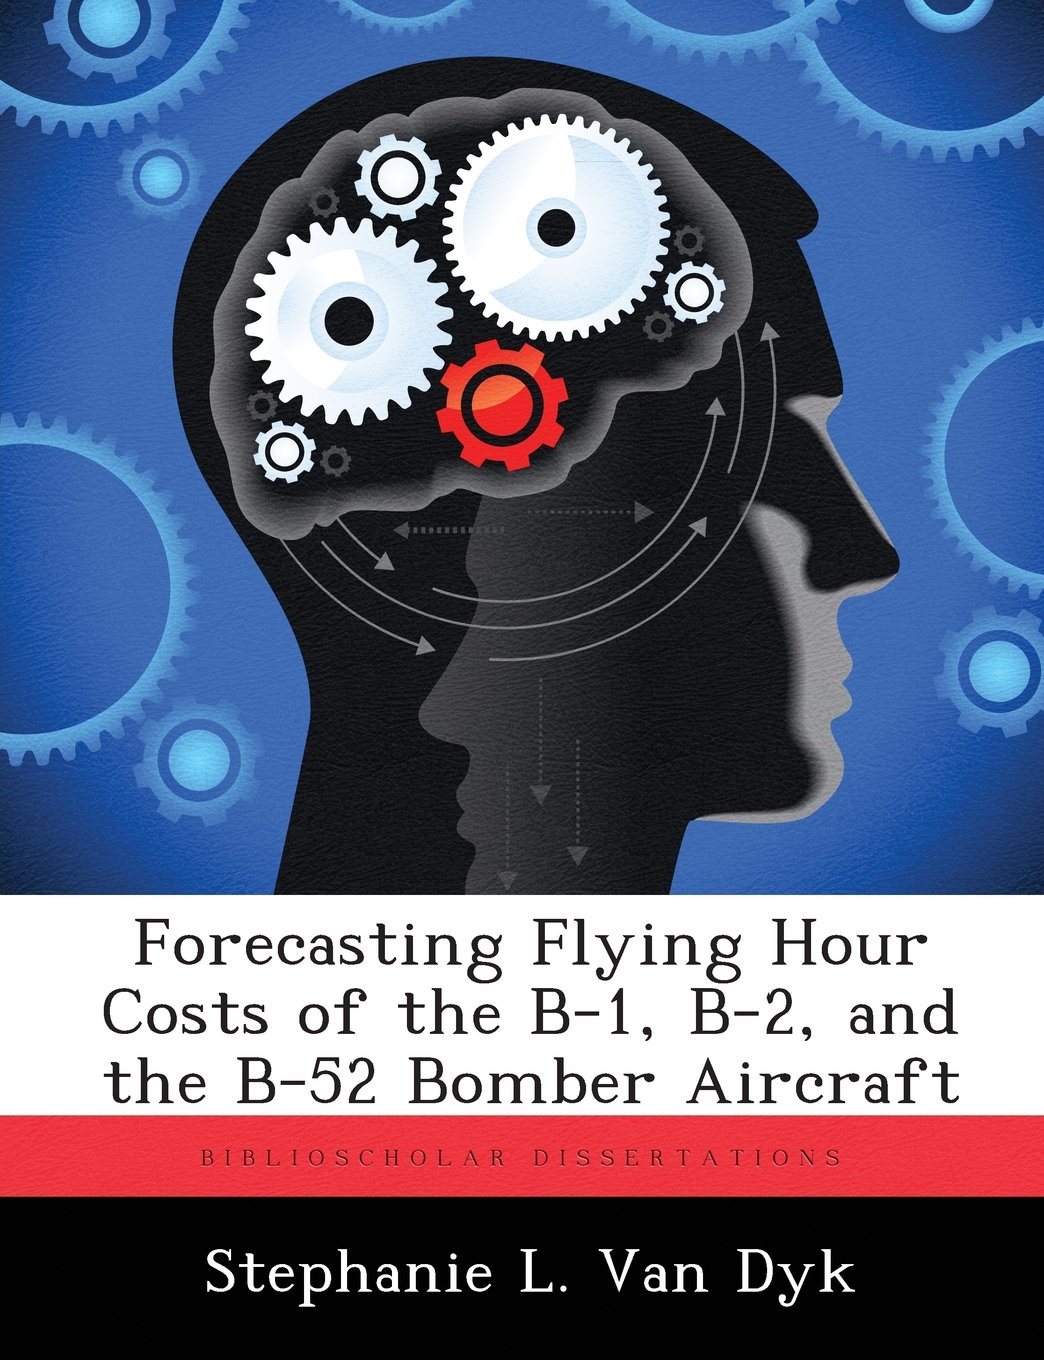 Read Online Forecasting Flying Hour Costs of the B-1, B-2, and the B-52 Bomber Aircraft pdf epub